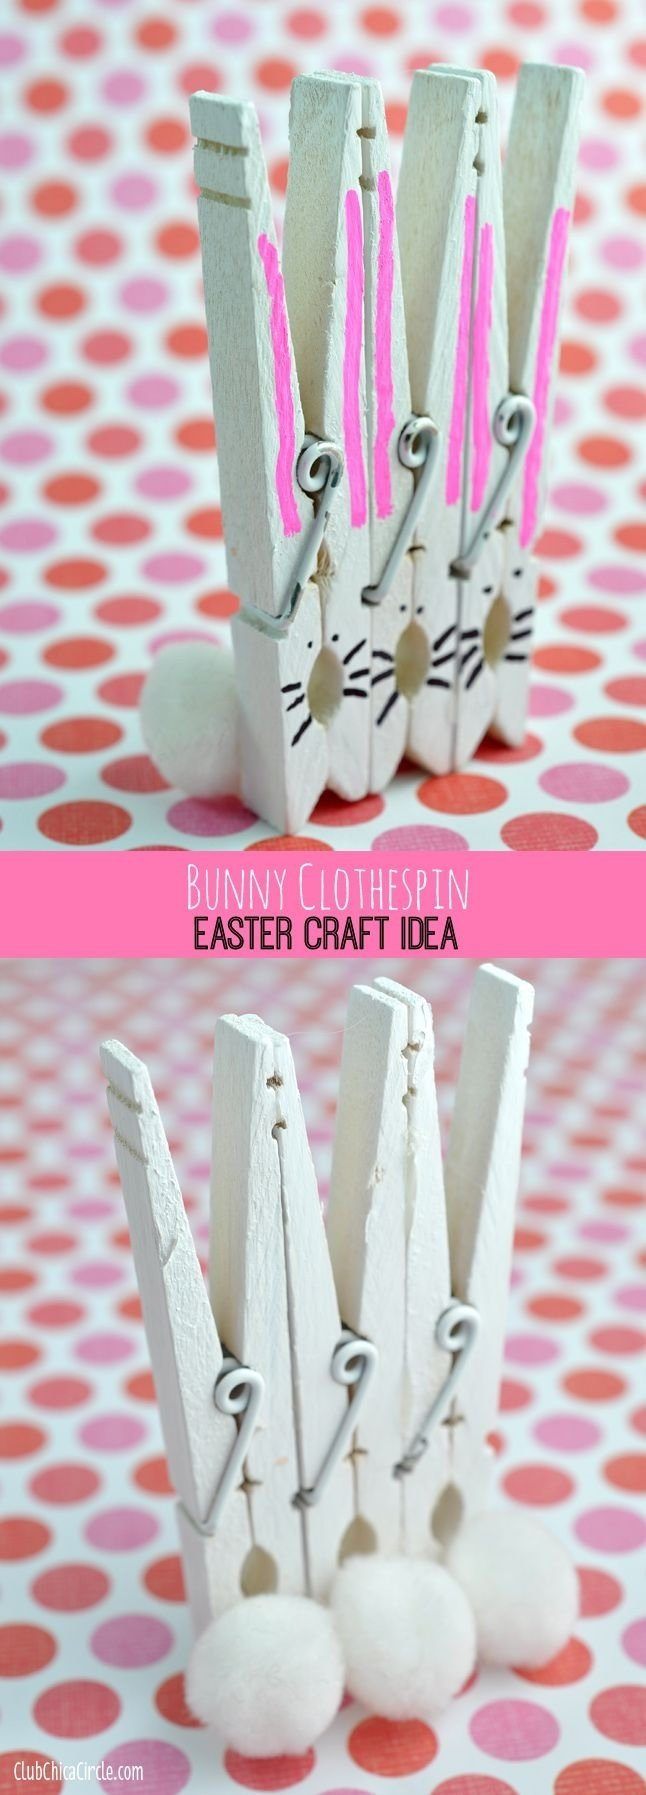 10 Great Easter Craft Ideas For Adults bunny clothespins easter craft idea and diy club chica circle